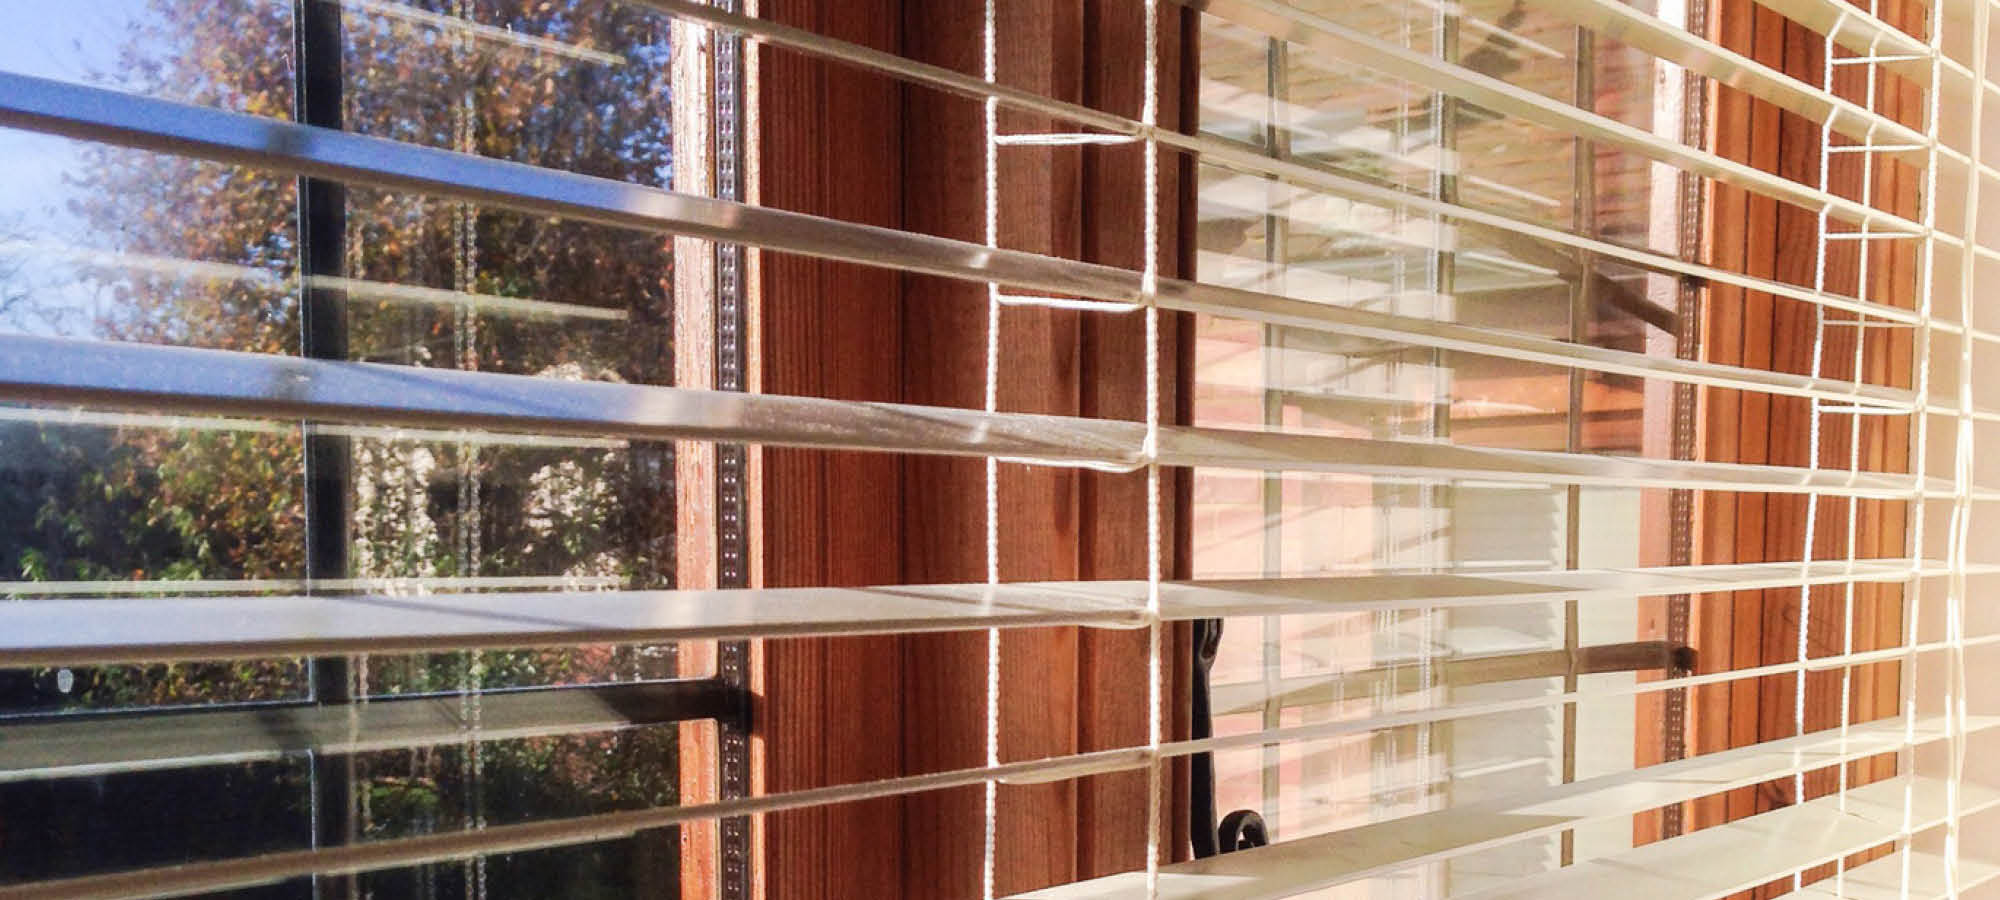 blind repair services saginaw | SK Blinds